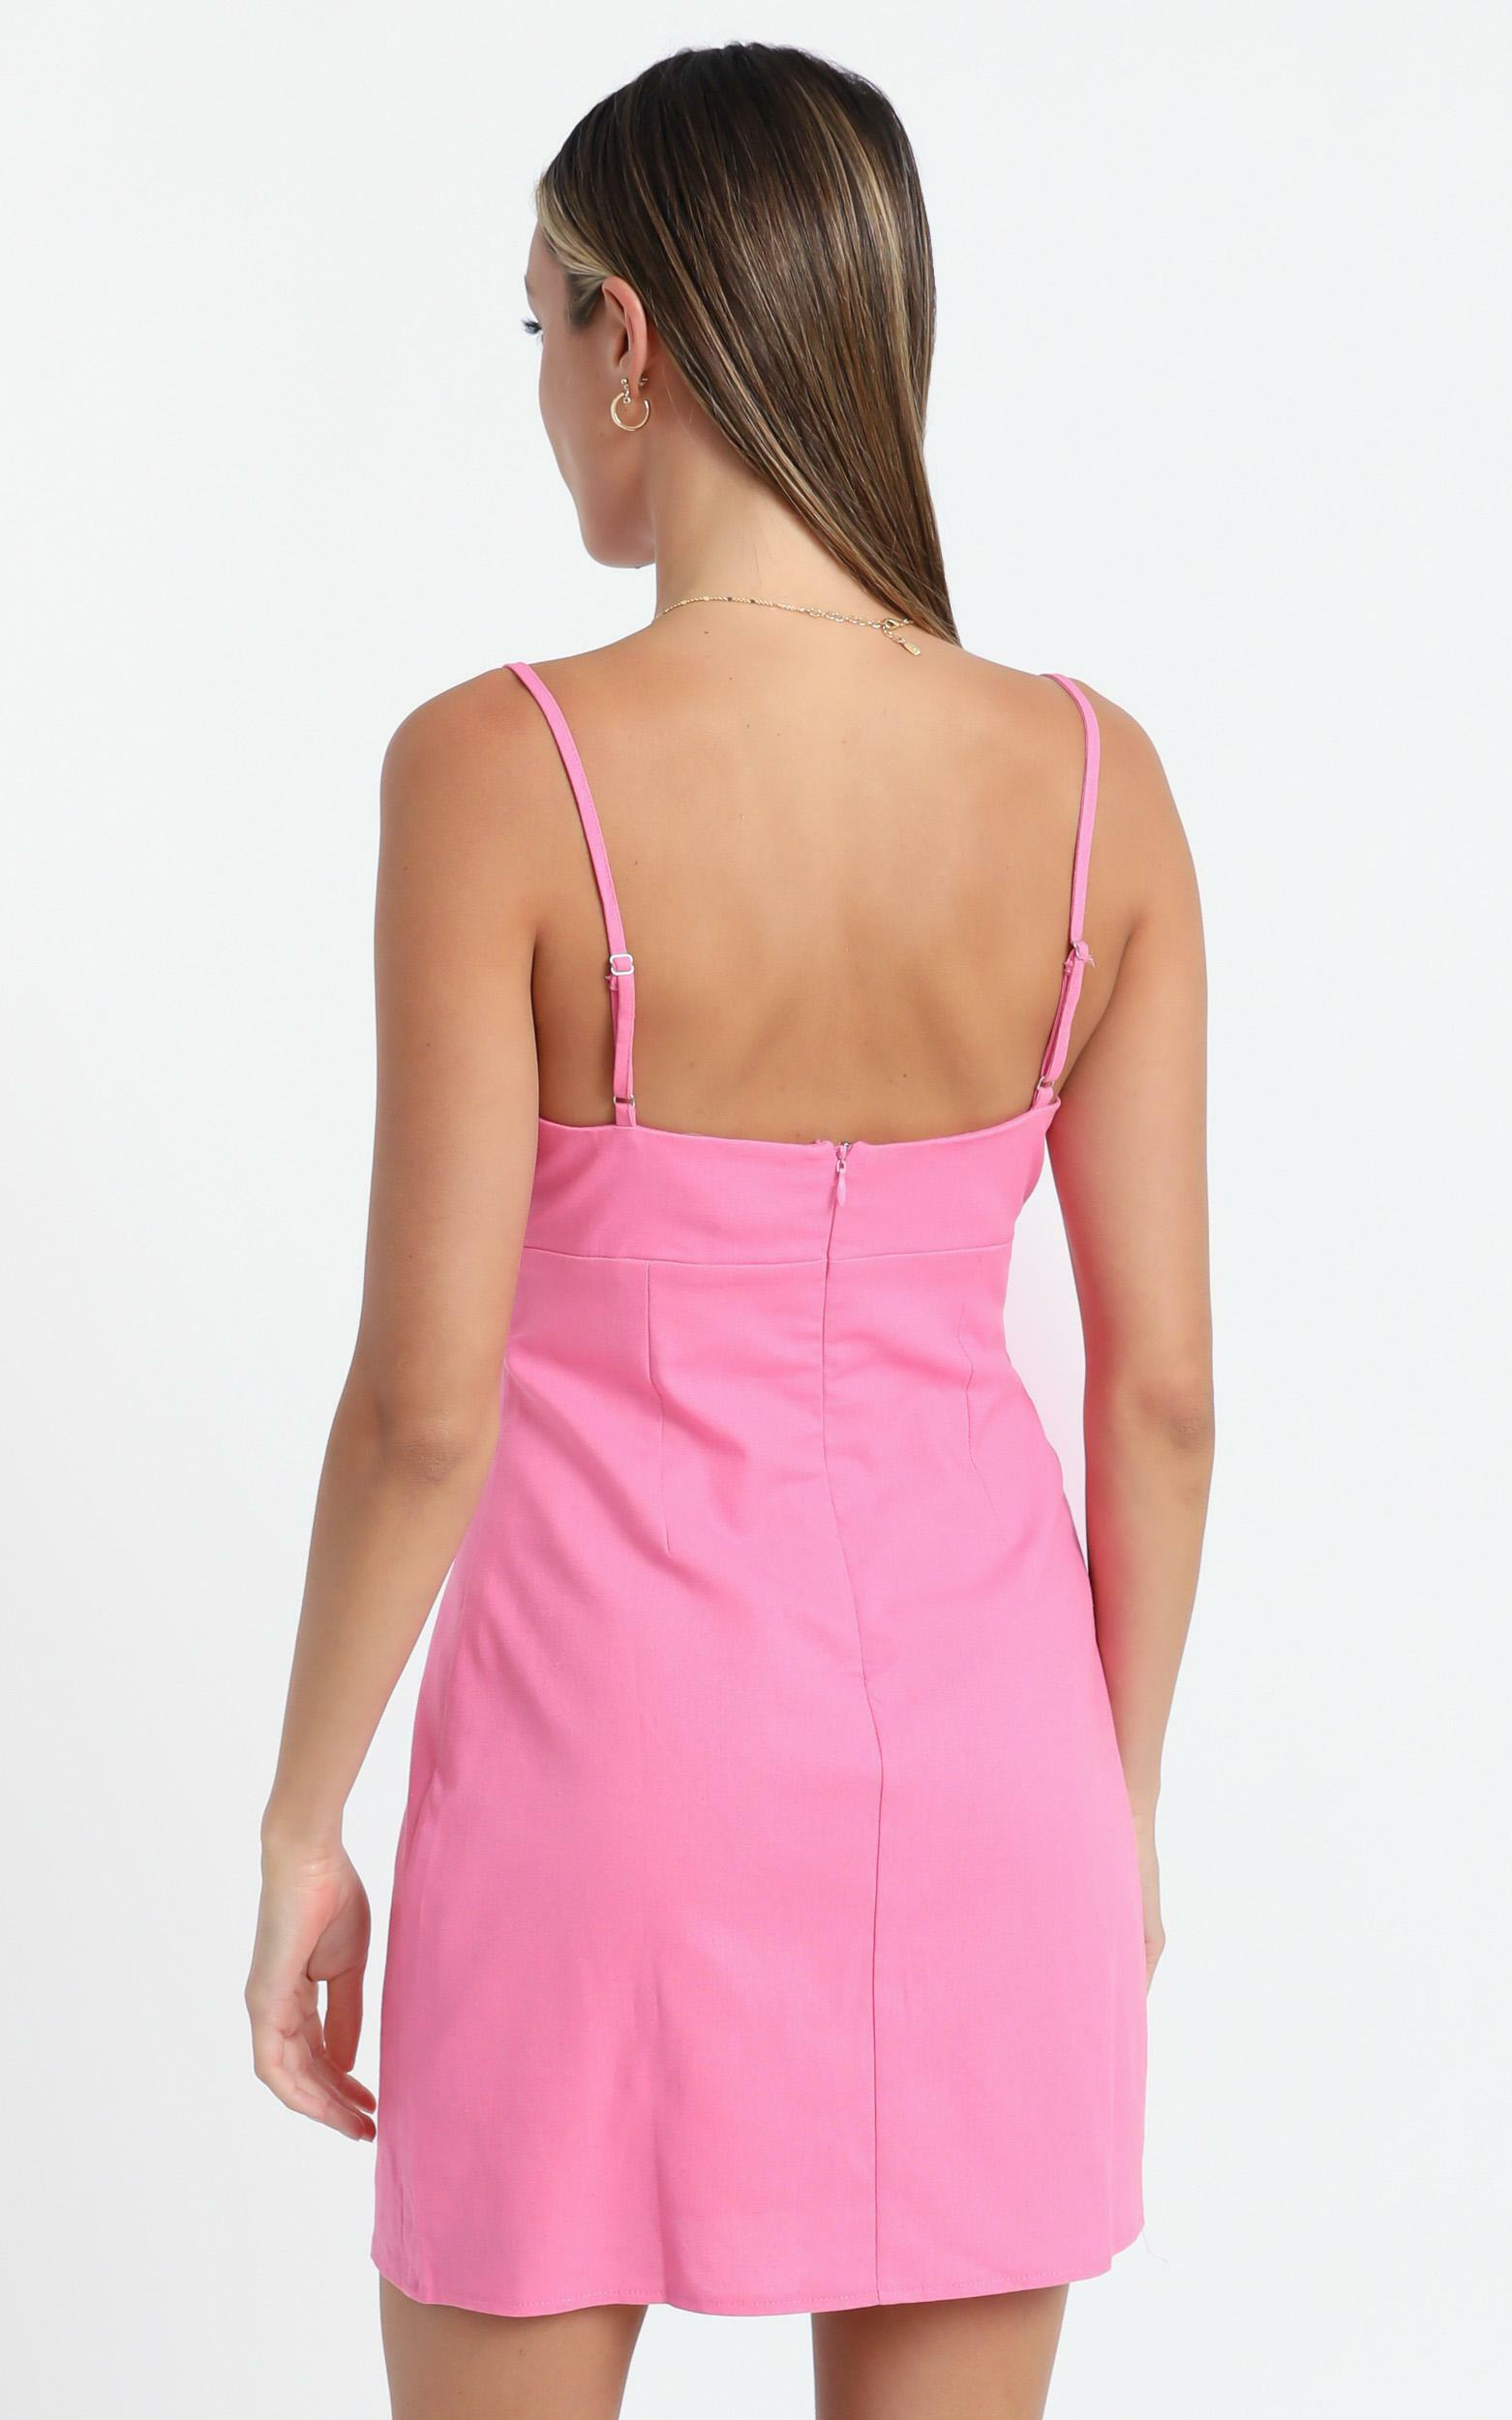 Break Free With Me Dress in Pink Linen Look - 4 (XXS), Pink, hi-res image number null